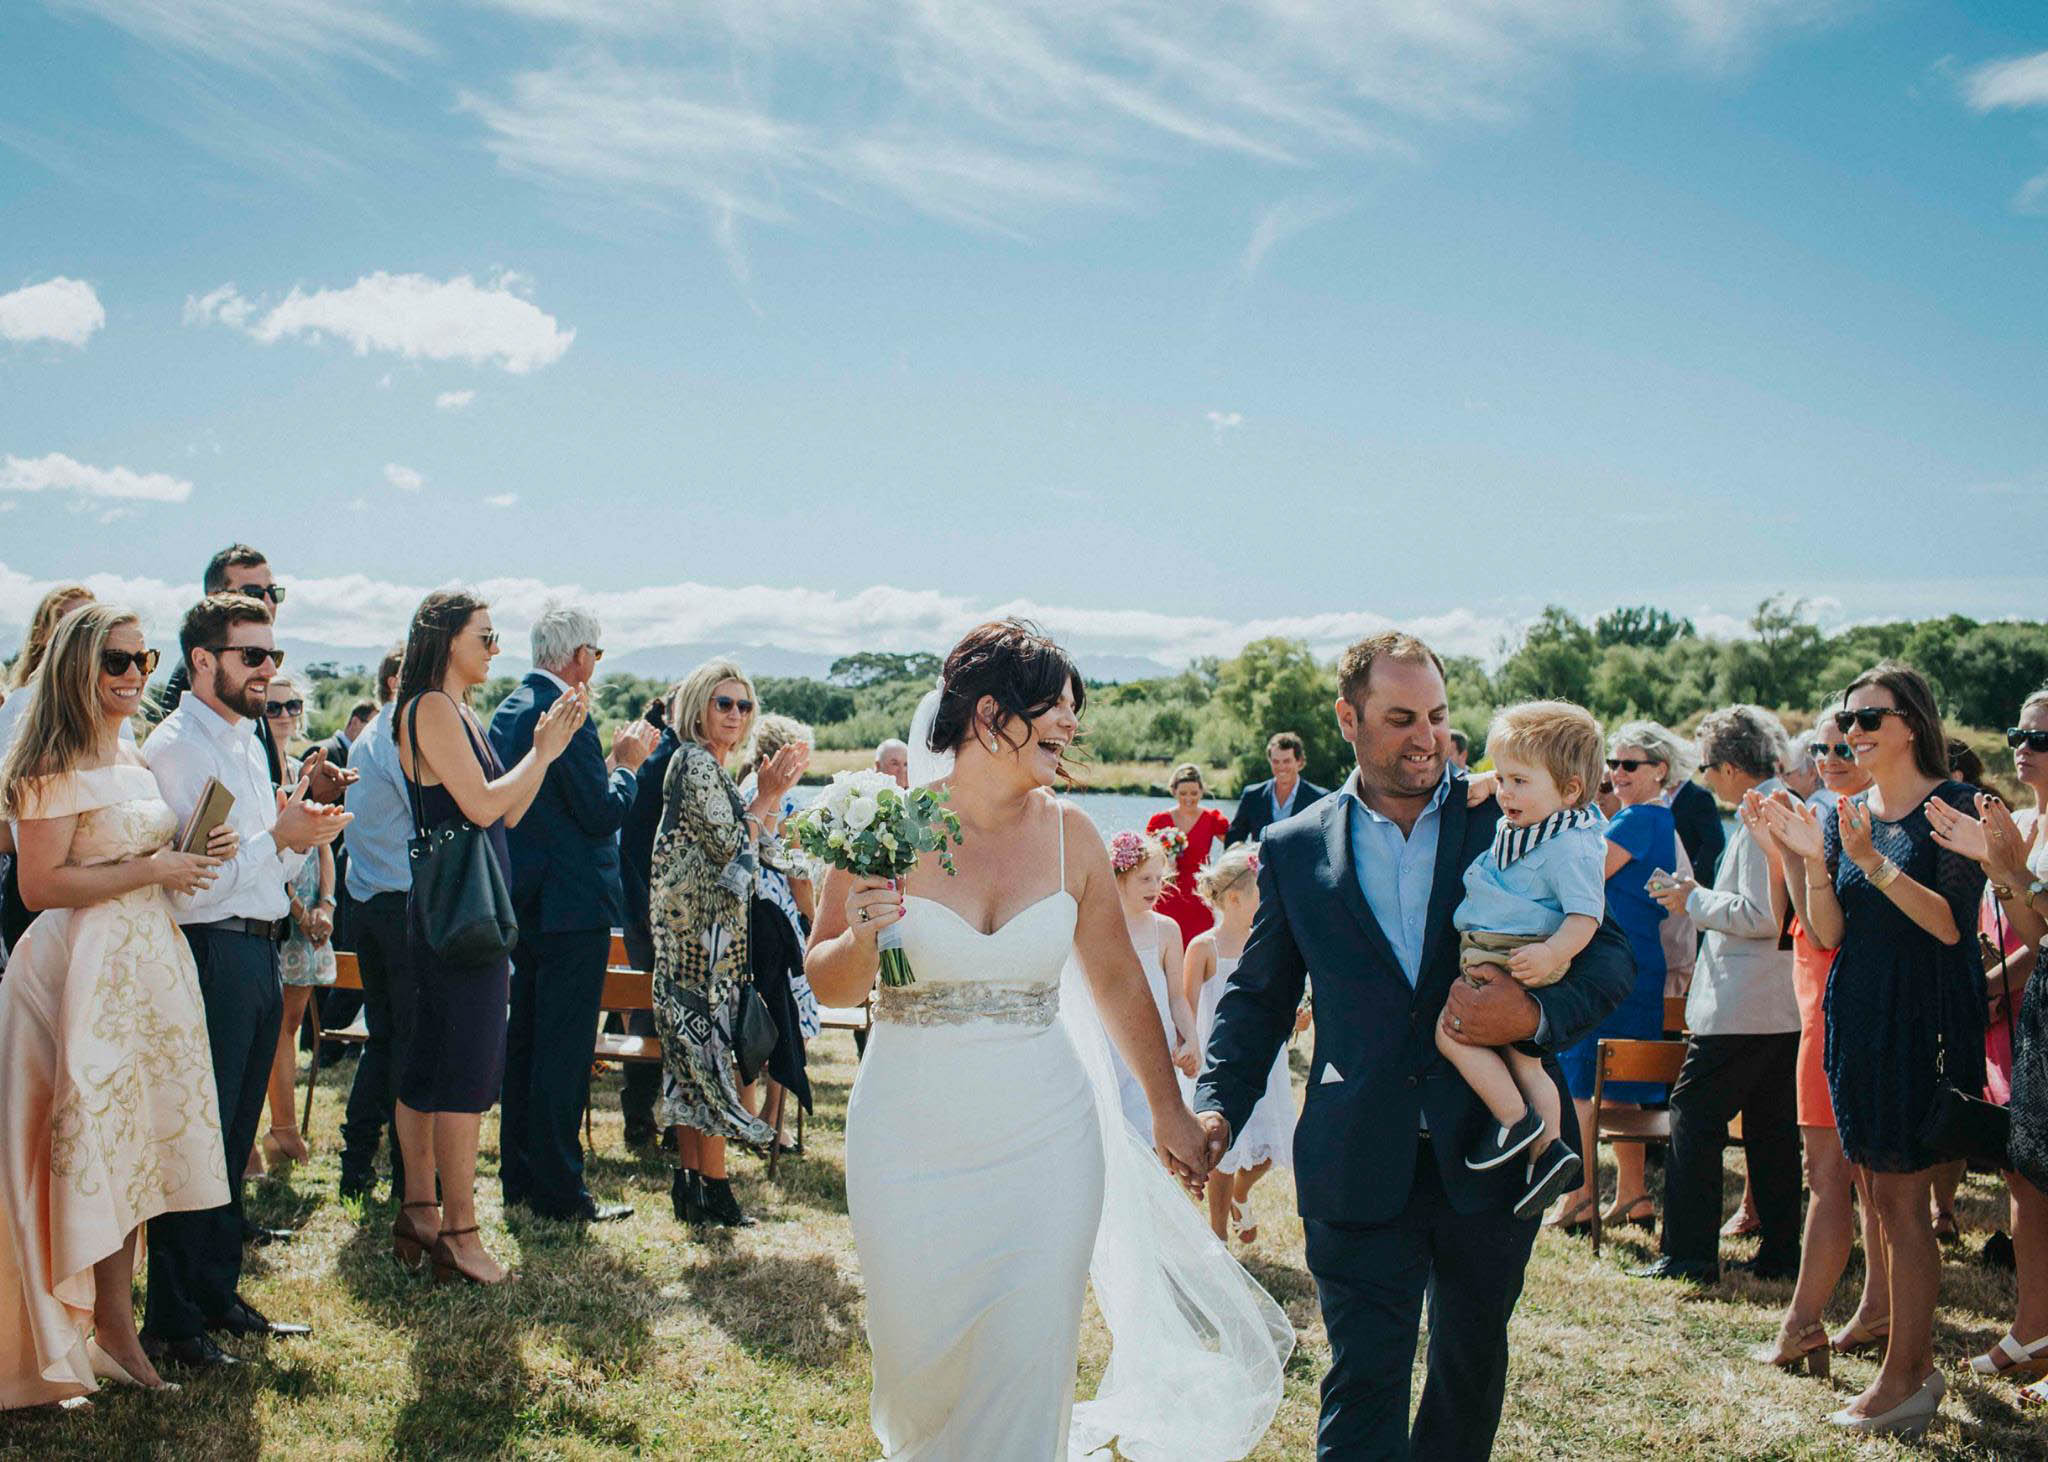 Wedding at backpaddock lakes